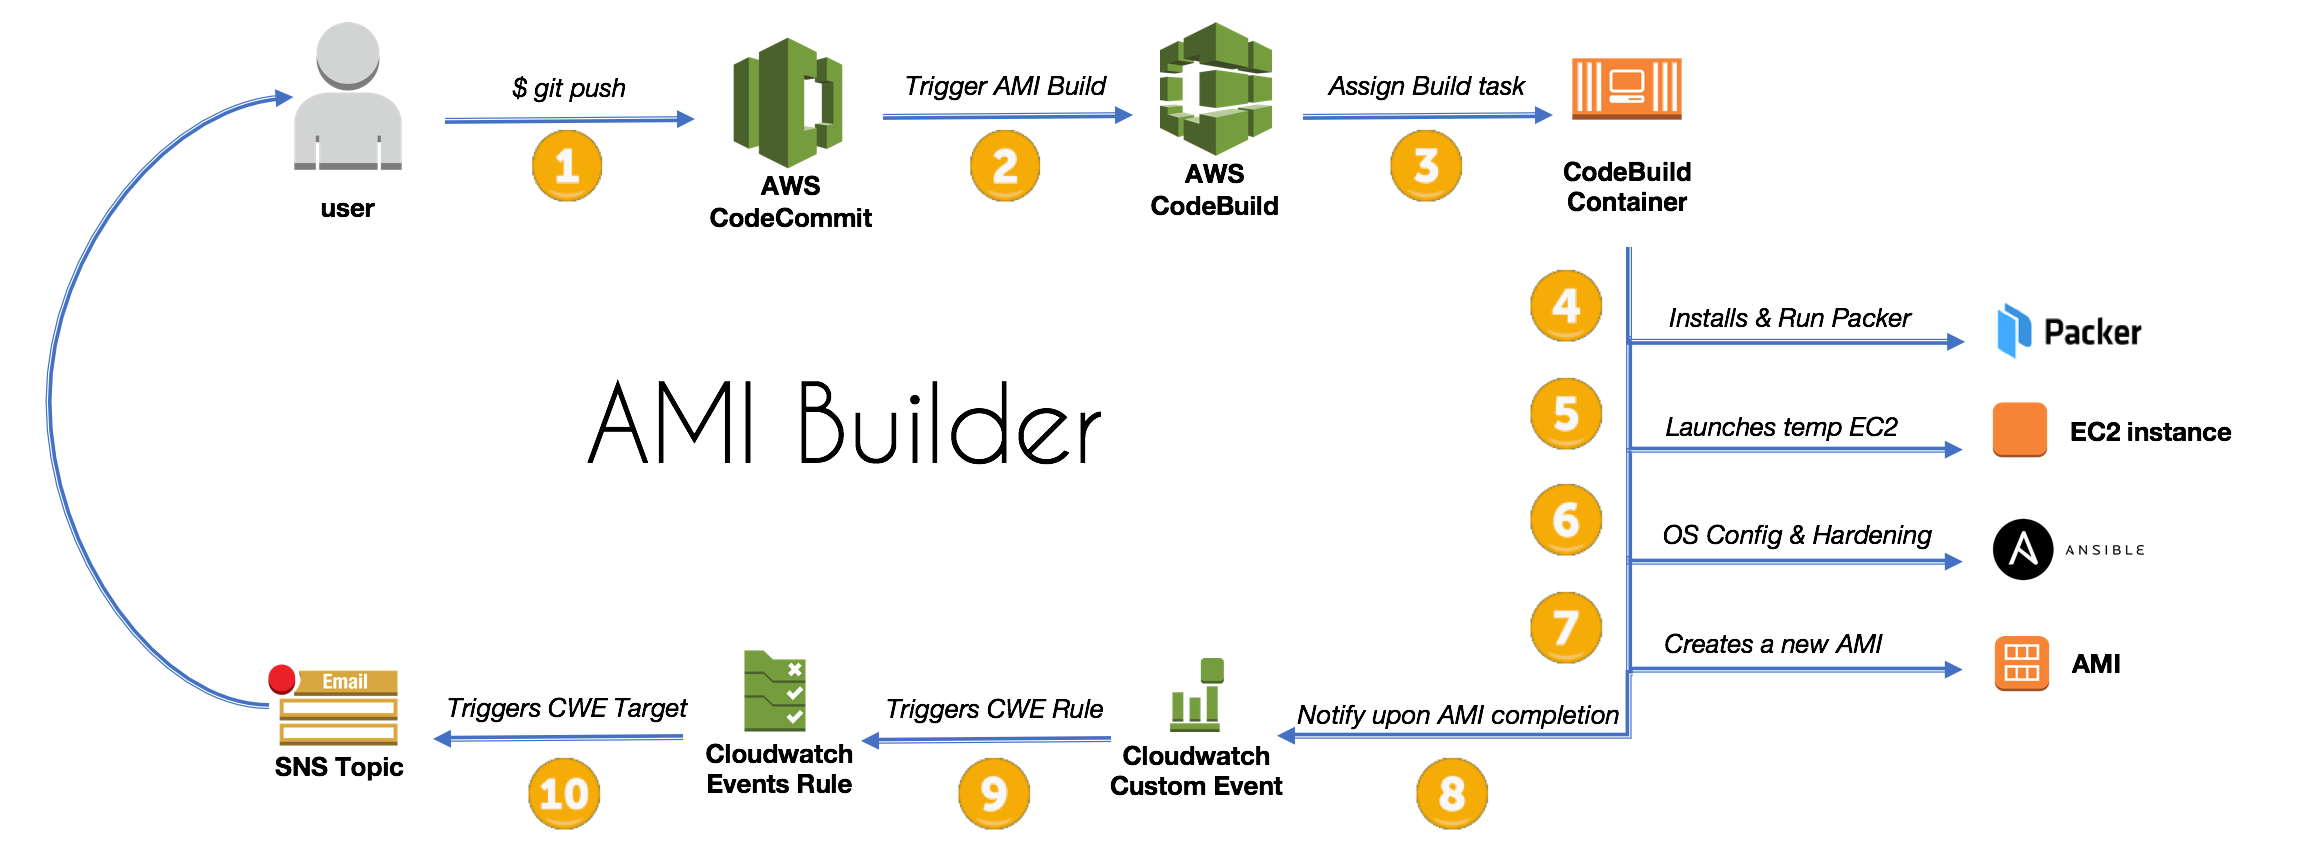 How To Create An Ami Builder With Aws Codebuild And With Regard To Cloudformation Template Generator